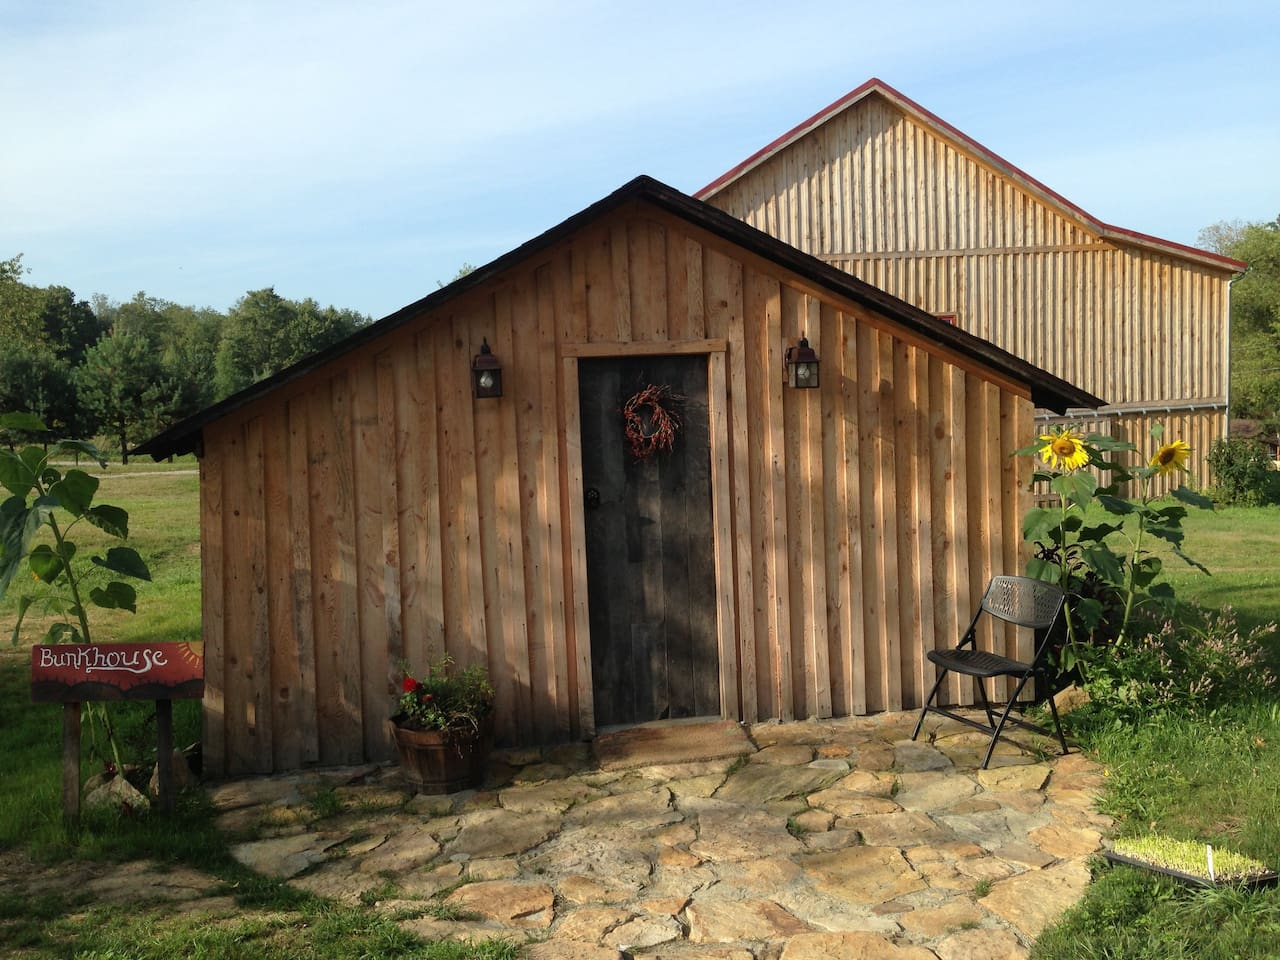 Bunkhouse Cabin at SanaView Farms